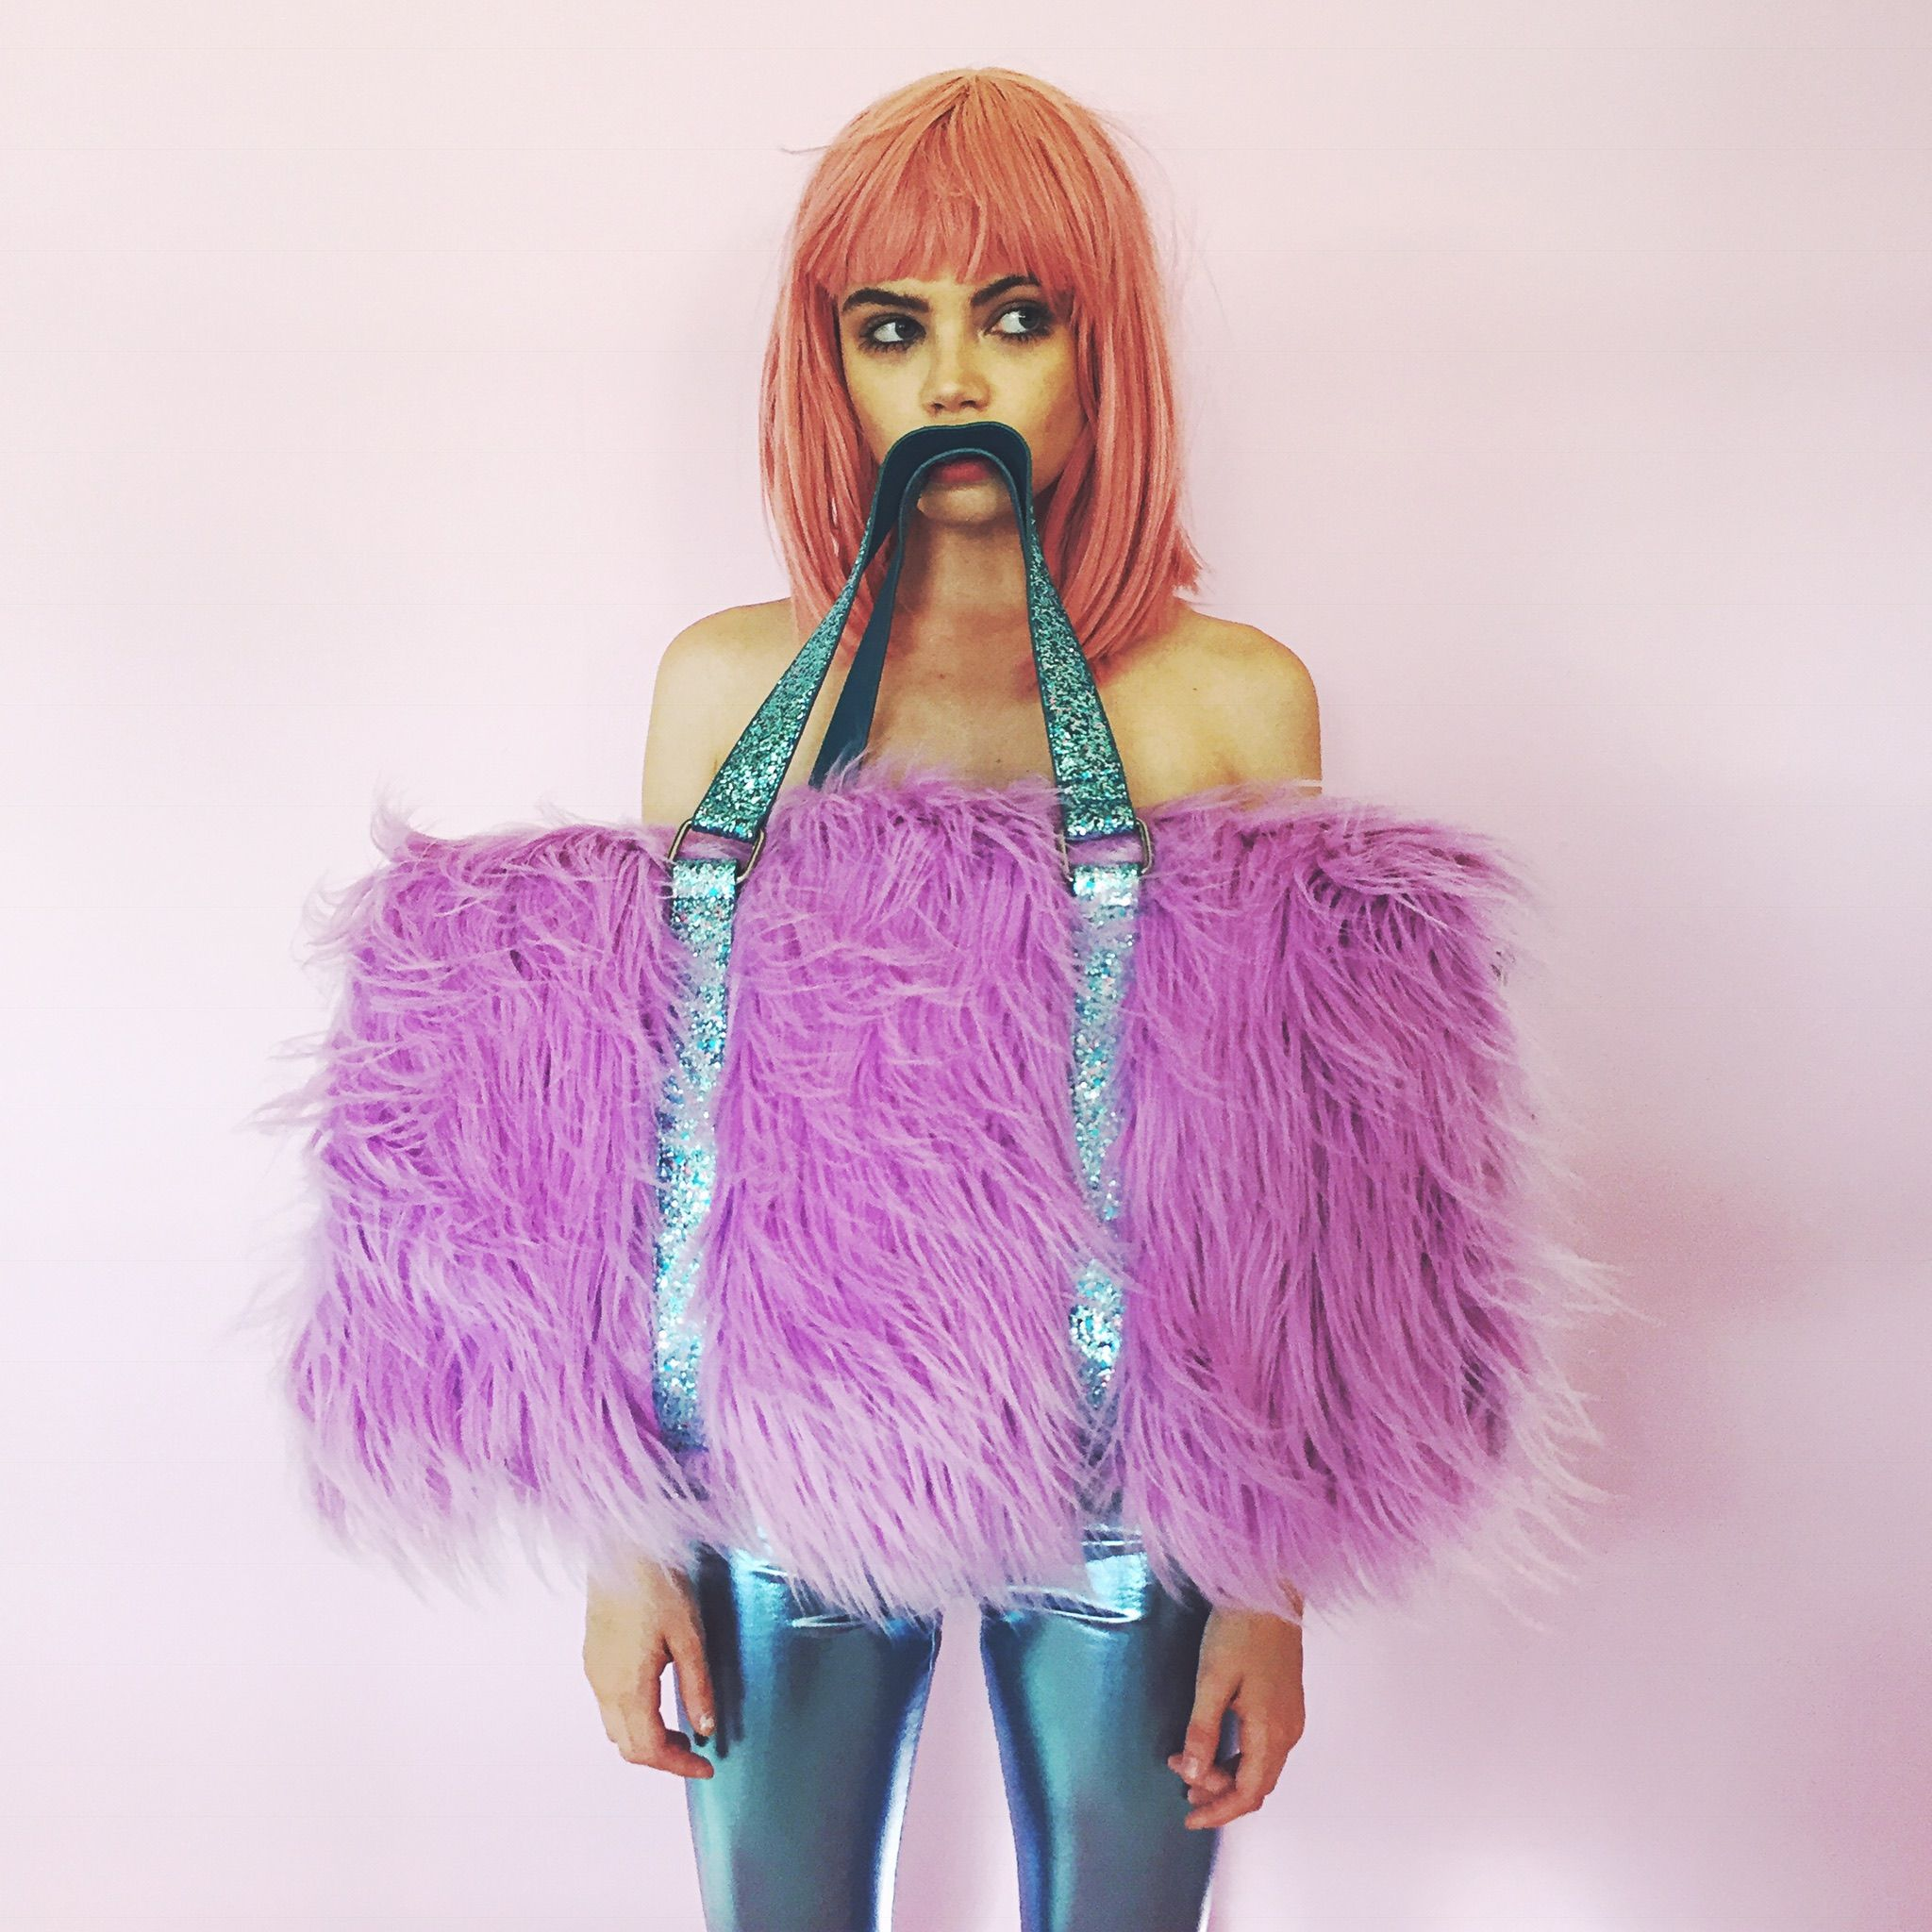 ca6733d77a Pre-oder dis bad boy https   www.dollskill.com